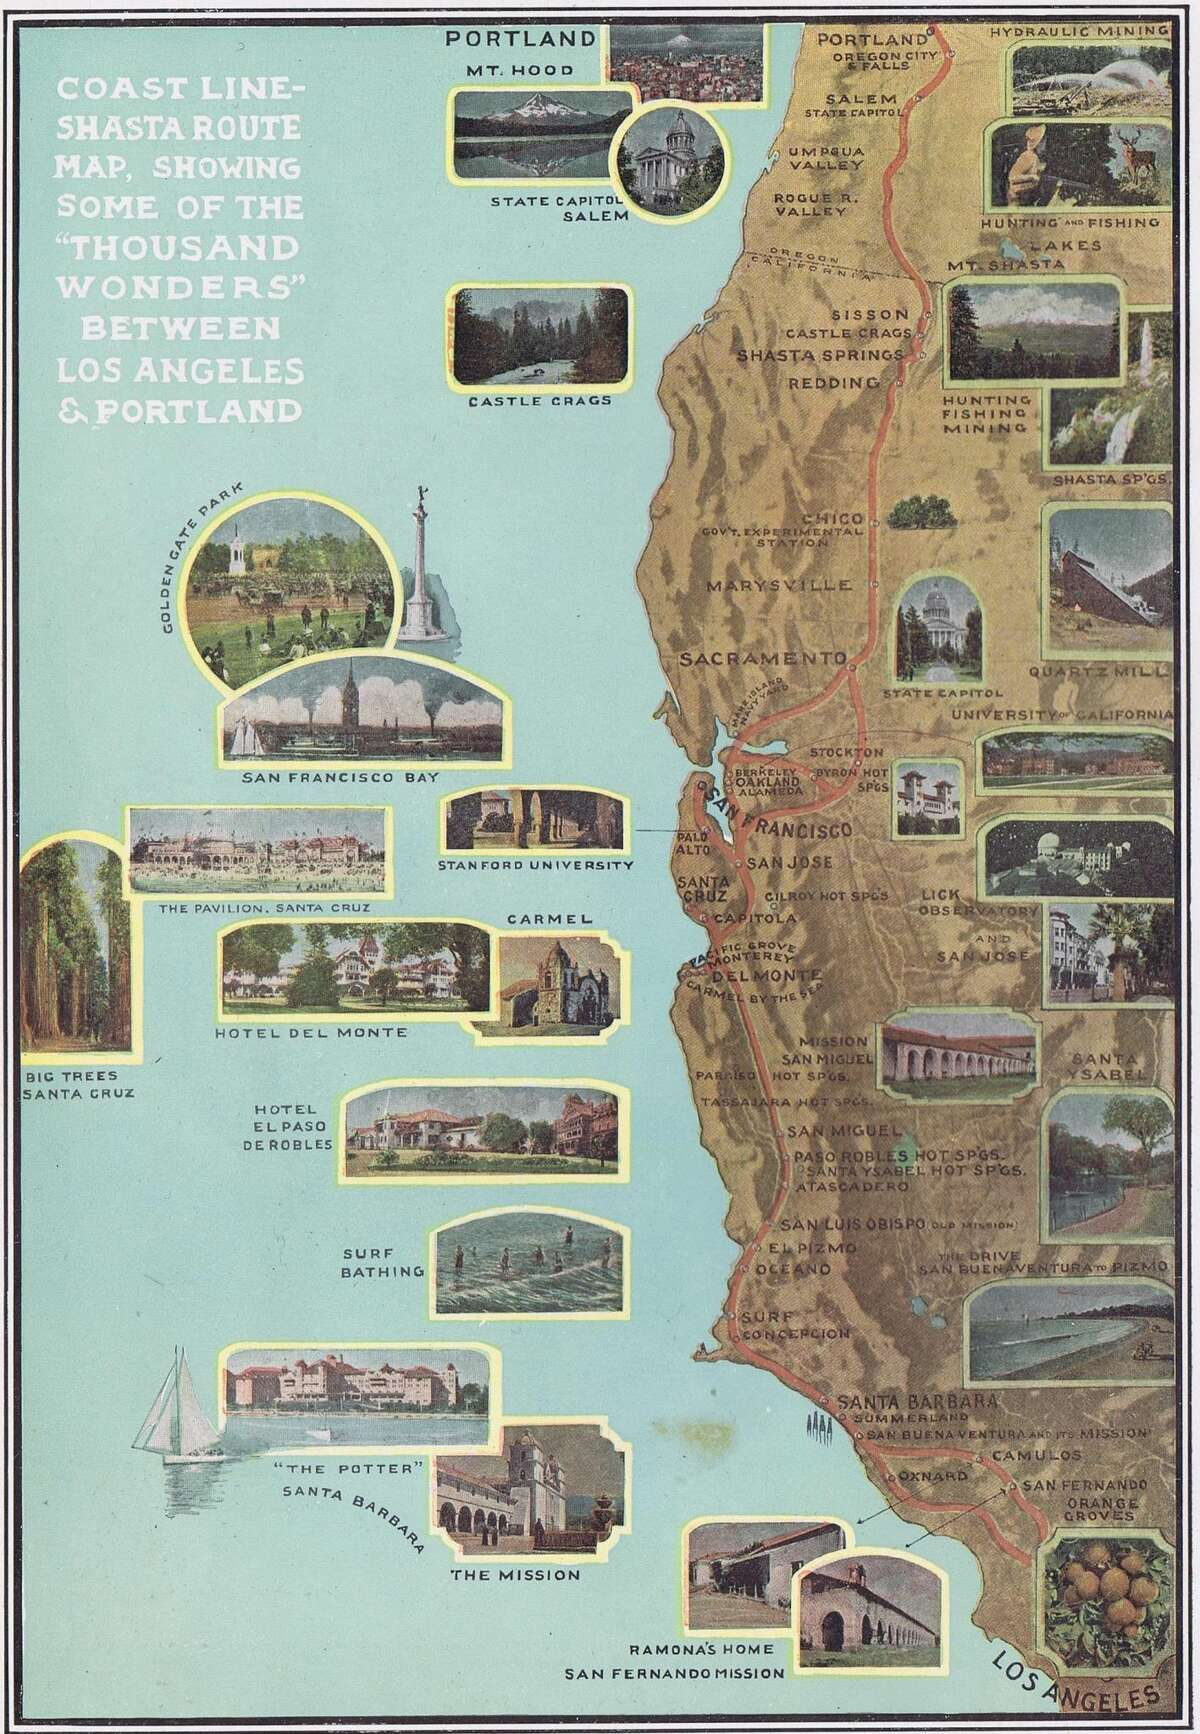 The Southern Pacific railroad line from Los Angeles to Oregon.